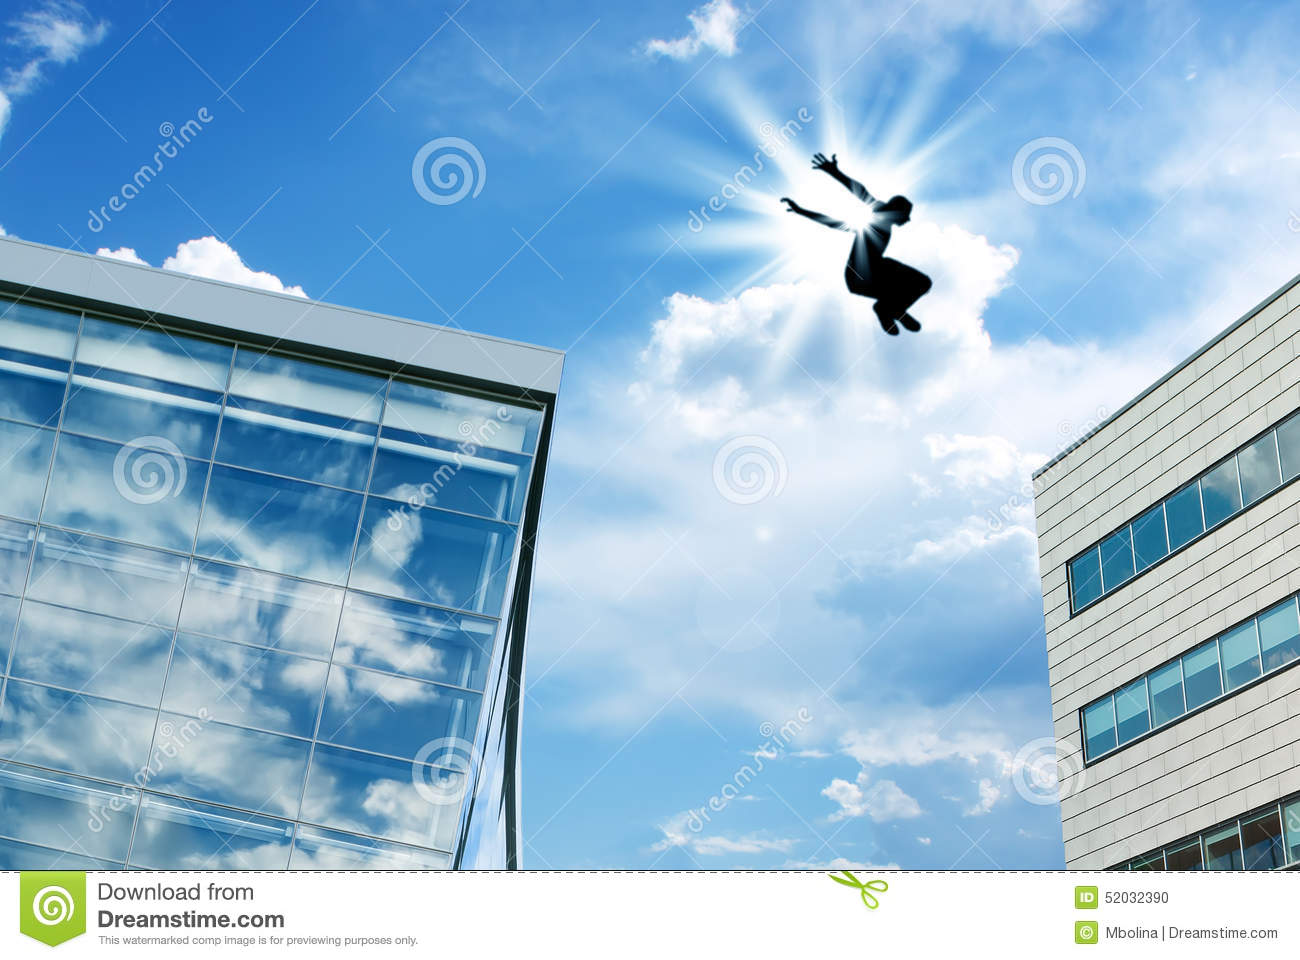 silhouette of a man leaping off building stock photo image of jump